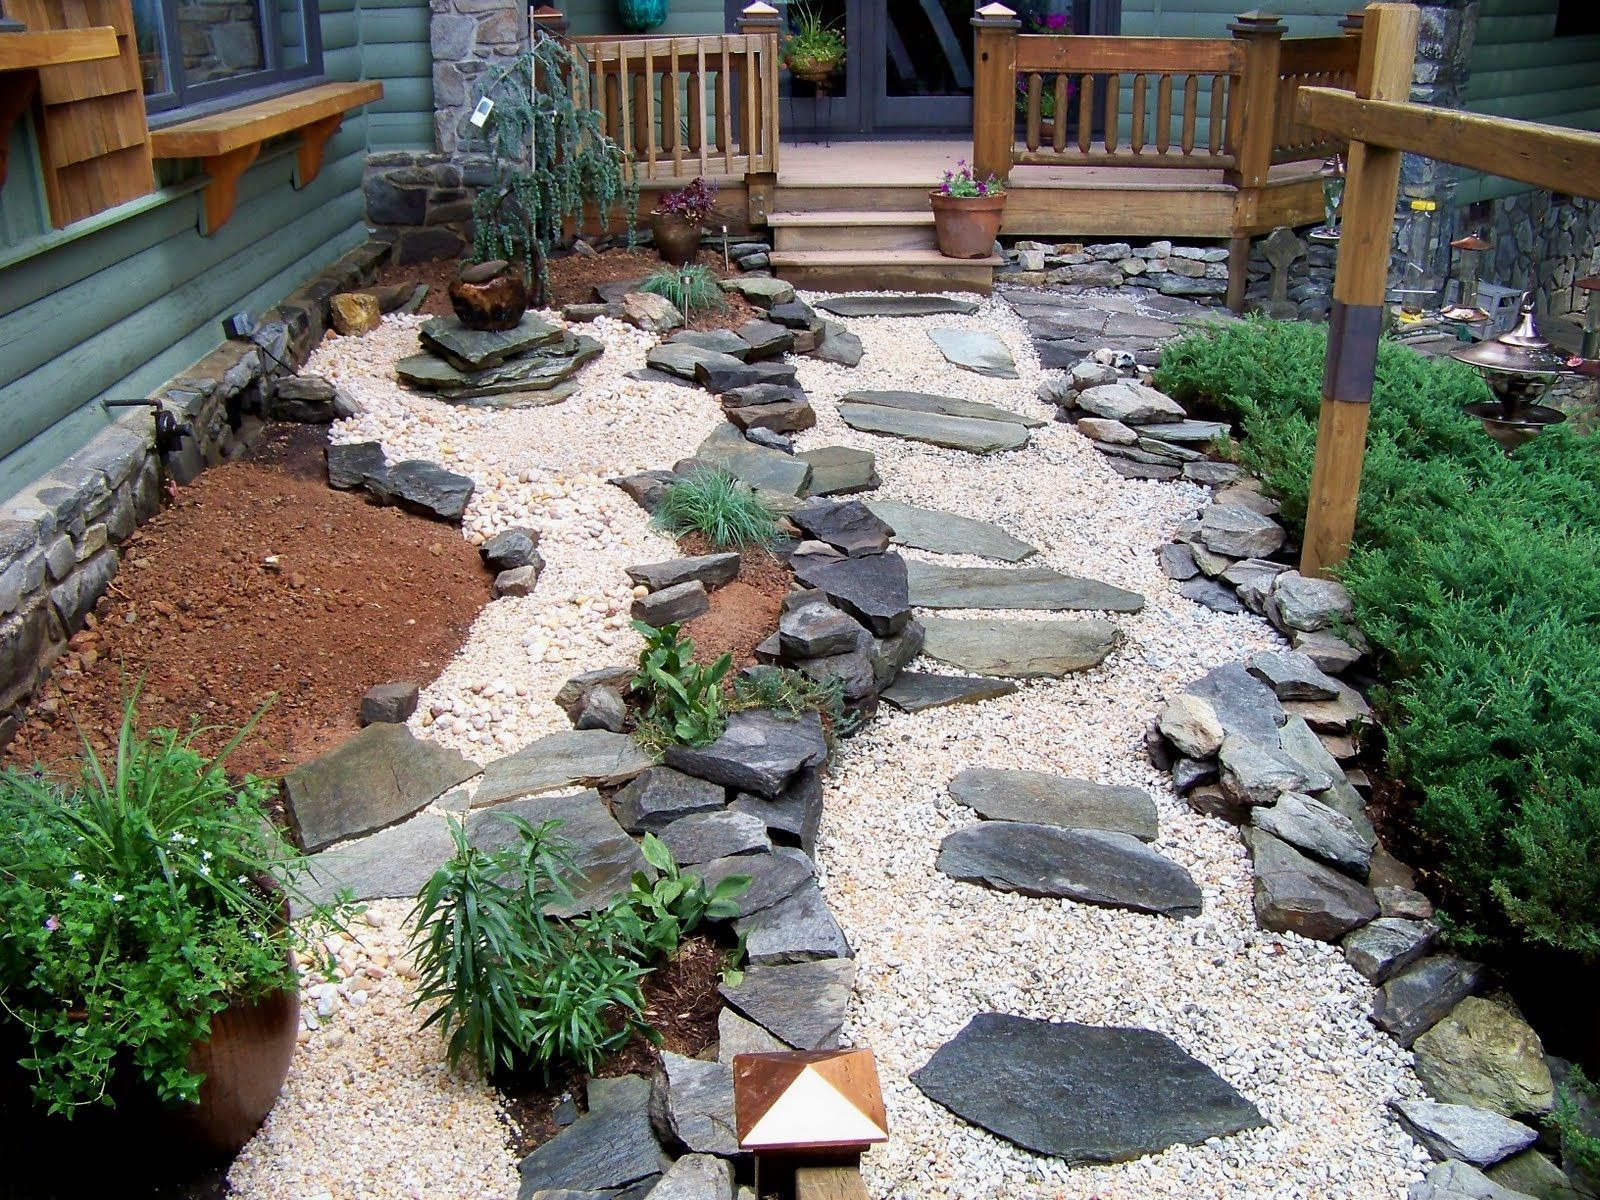 garden design with rock garden ideas using nature exterior accent designing city with front yard landscapes